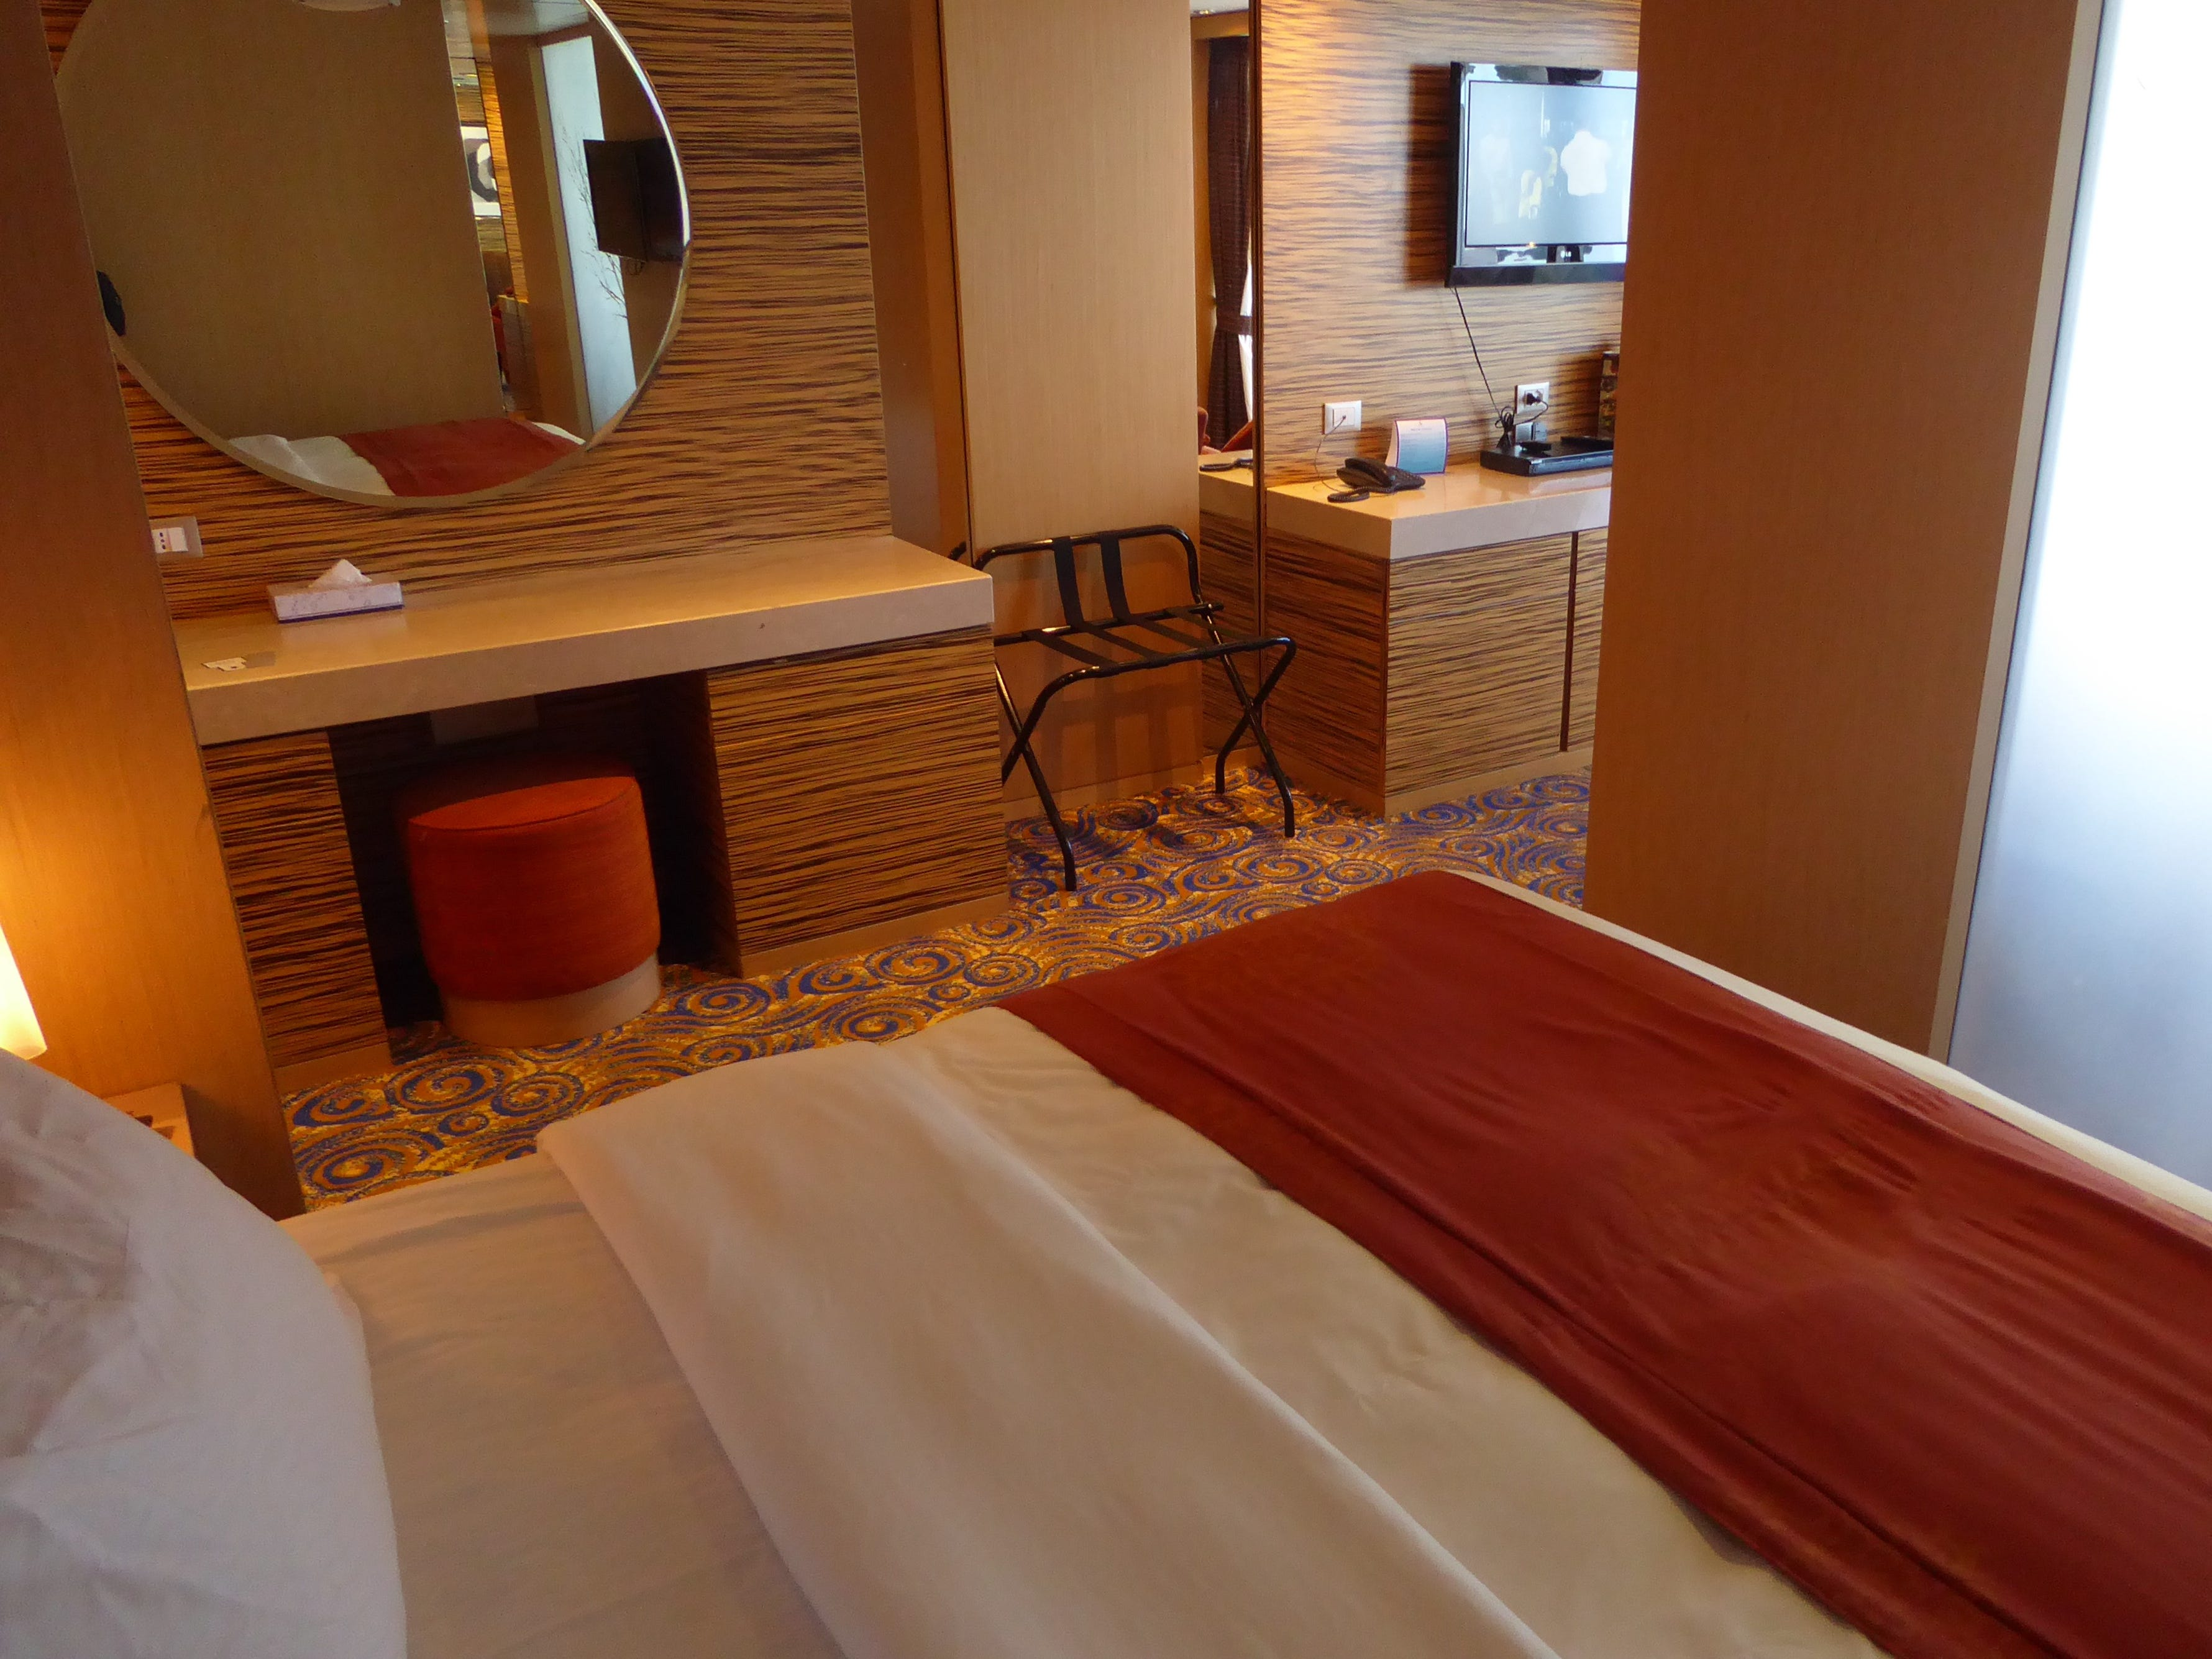 Deluxe Terrace Suite bedrooms have an oversized mirror and a dressing area.